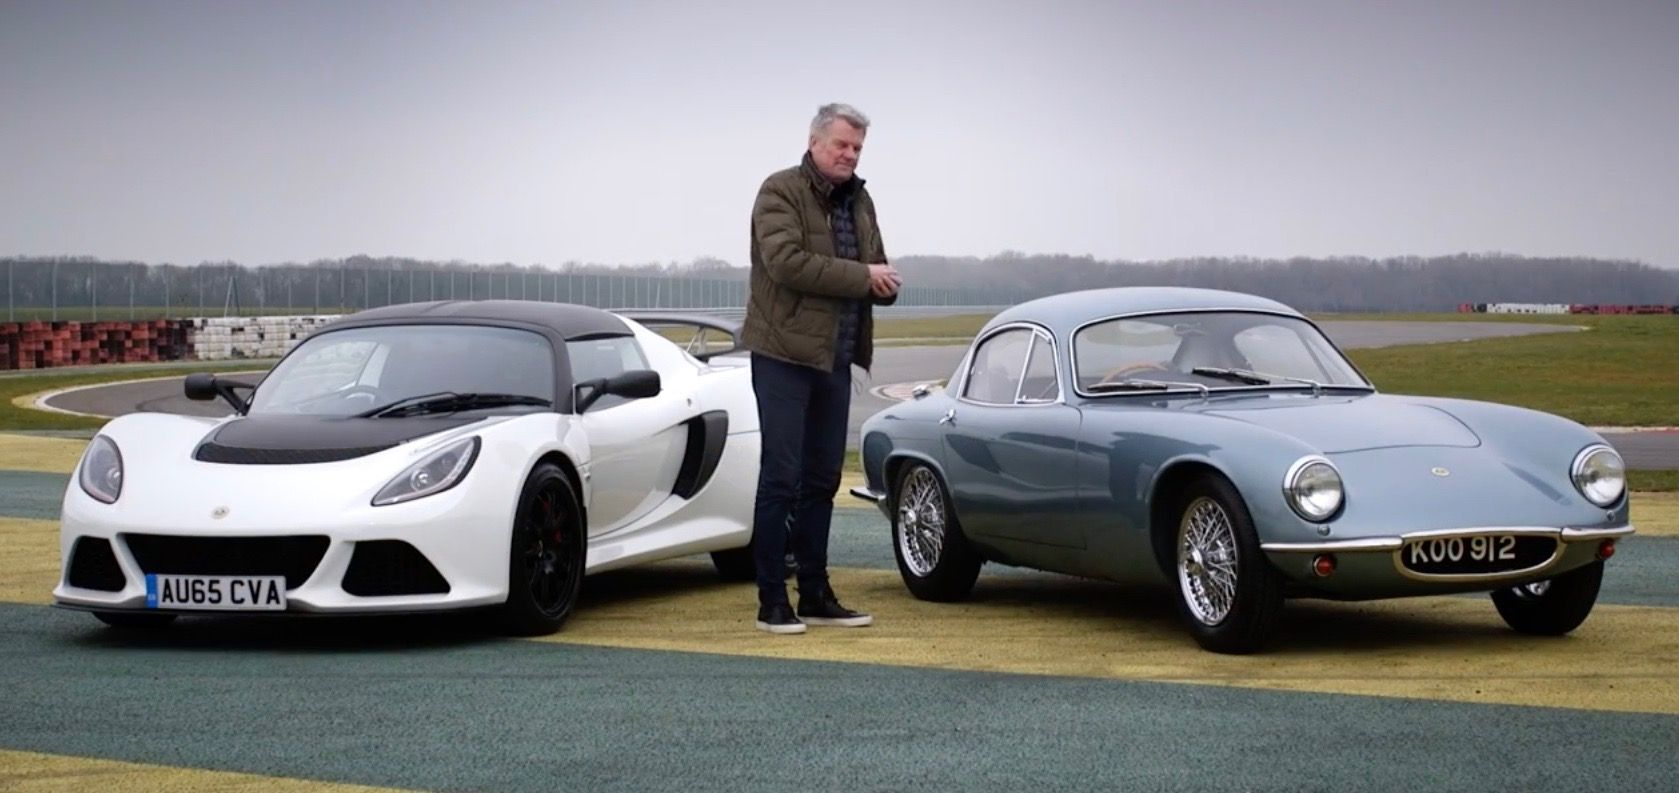 A 1957 Lotus Elite and a 2016 Exige Sport 350 Share the Same Goal